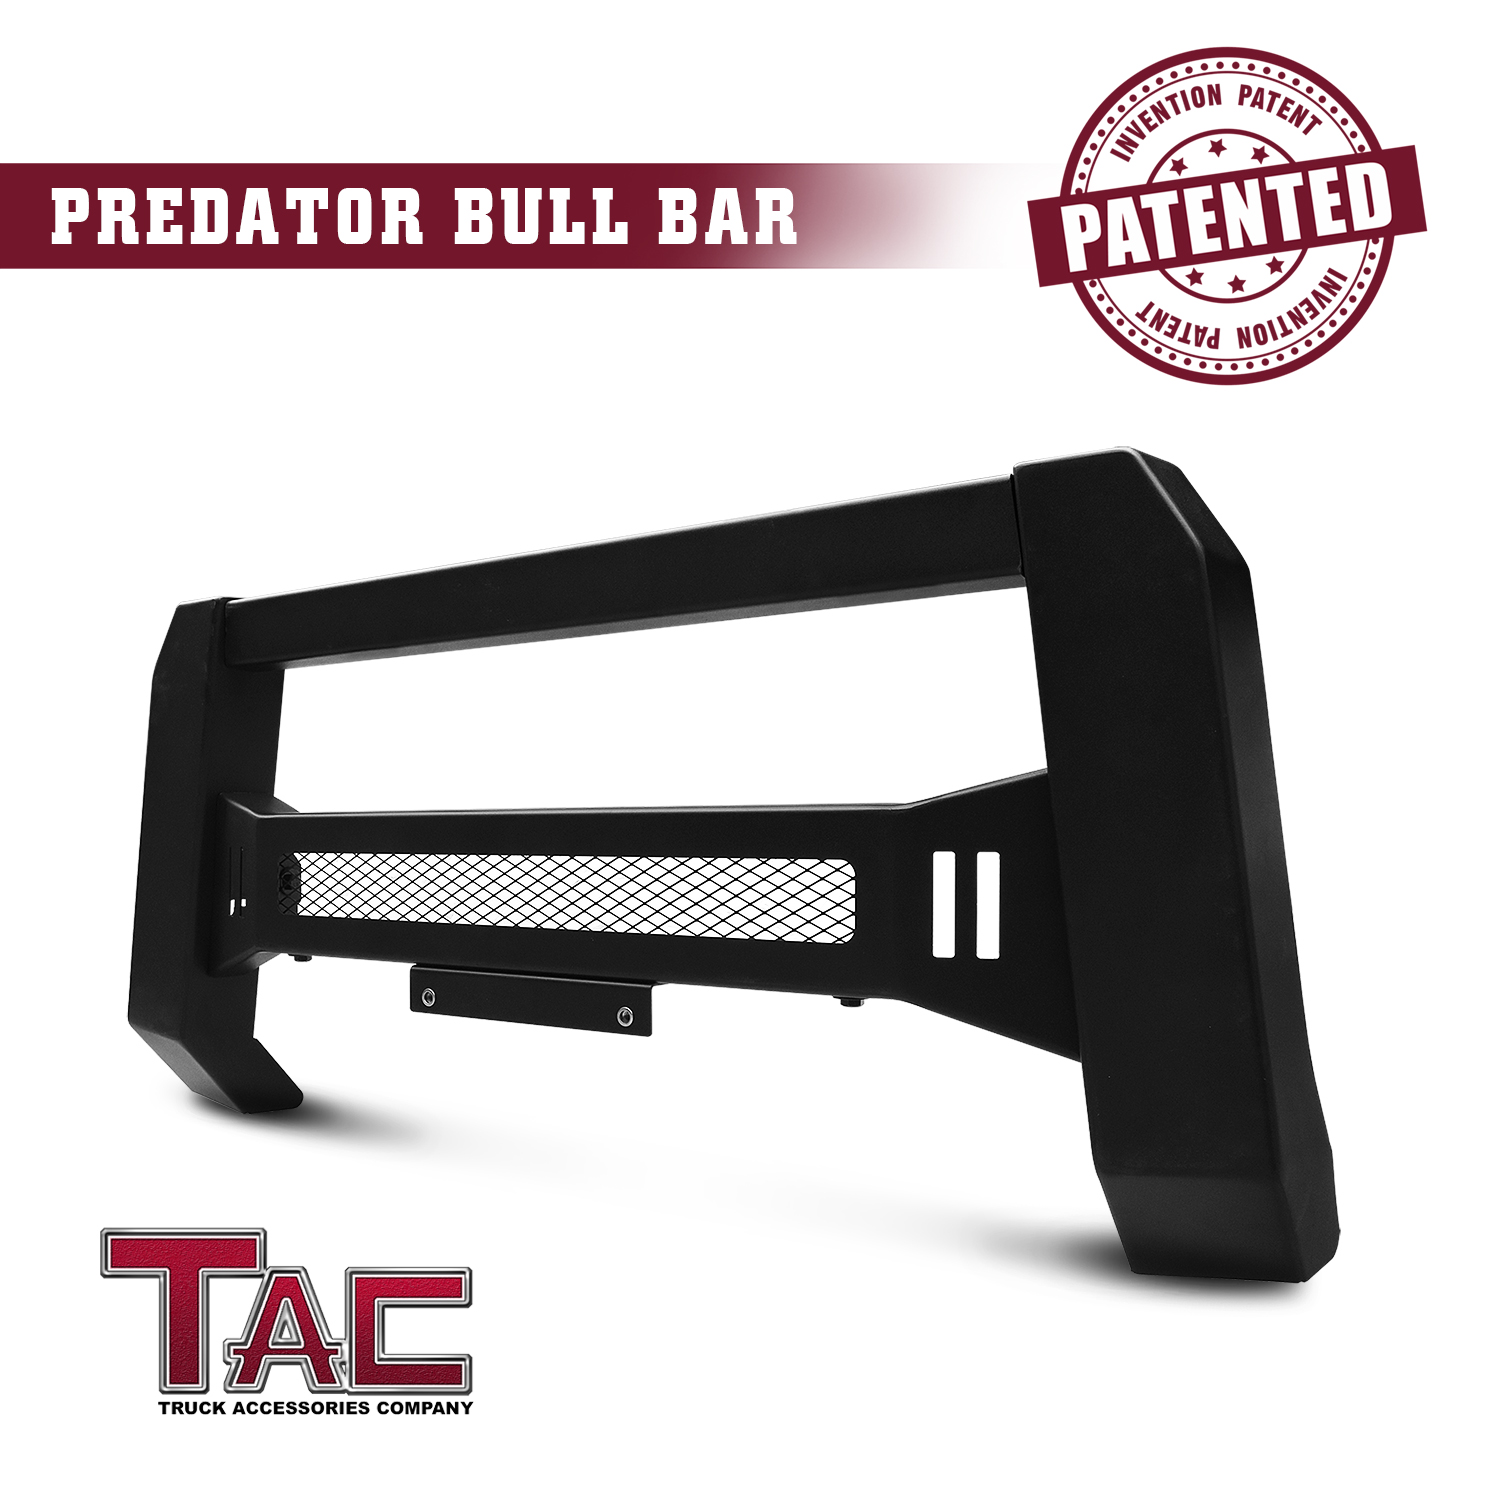 TAC Predator Mesh Version Modular Bull Bar for 2007-2019 Toyota Tundra Pickup Truck Front Brush Bumper Grille Guard Fine Textured Black Suitable for LED Off-Road Lights